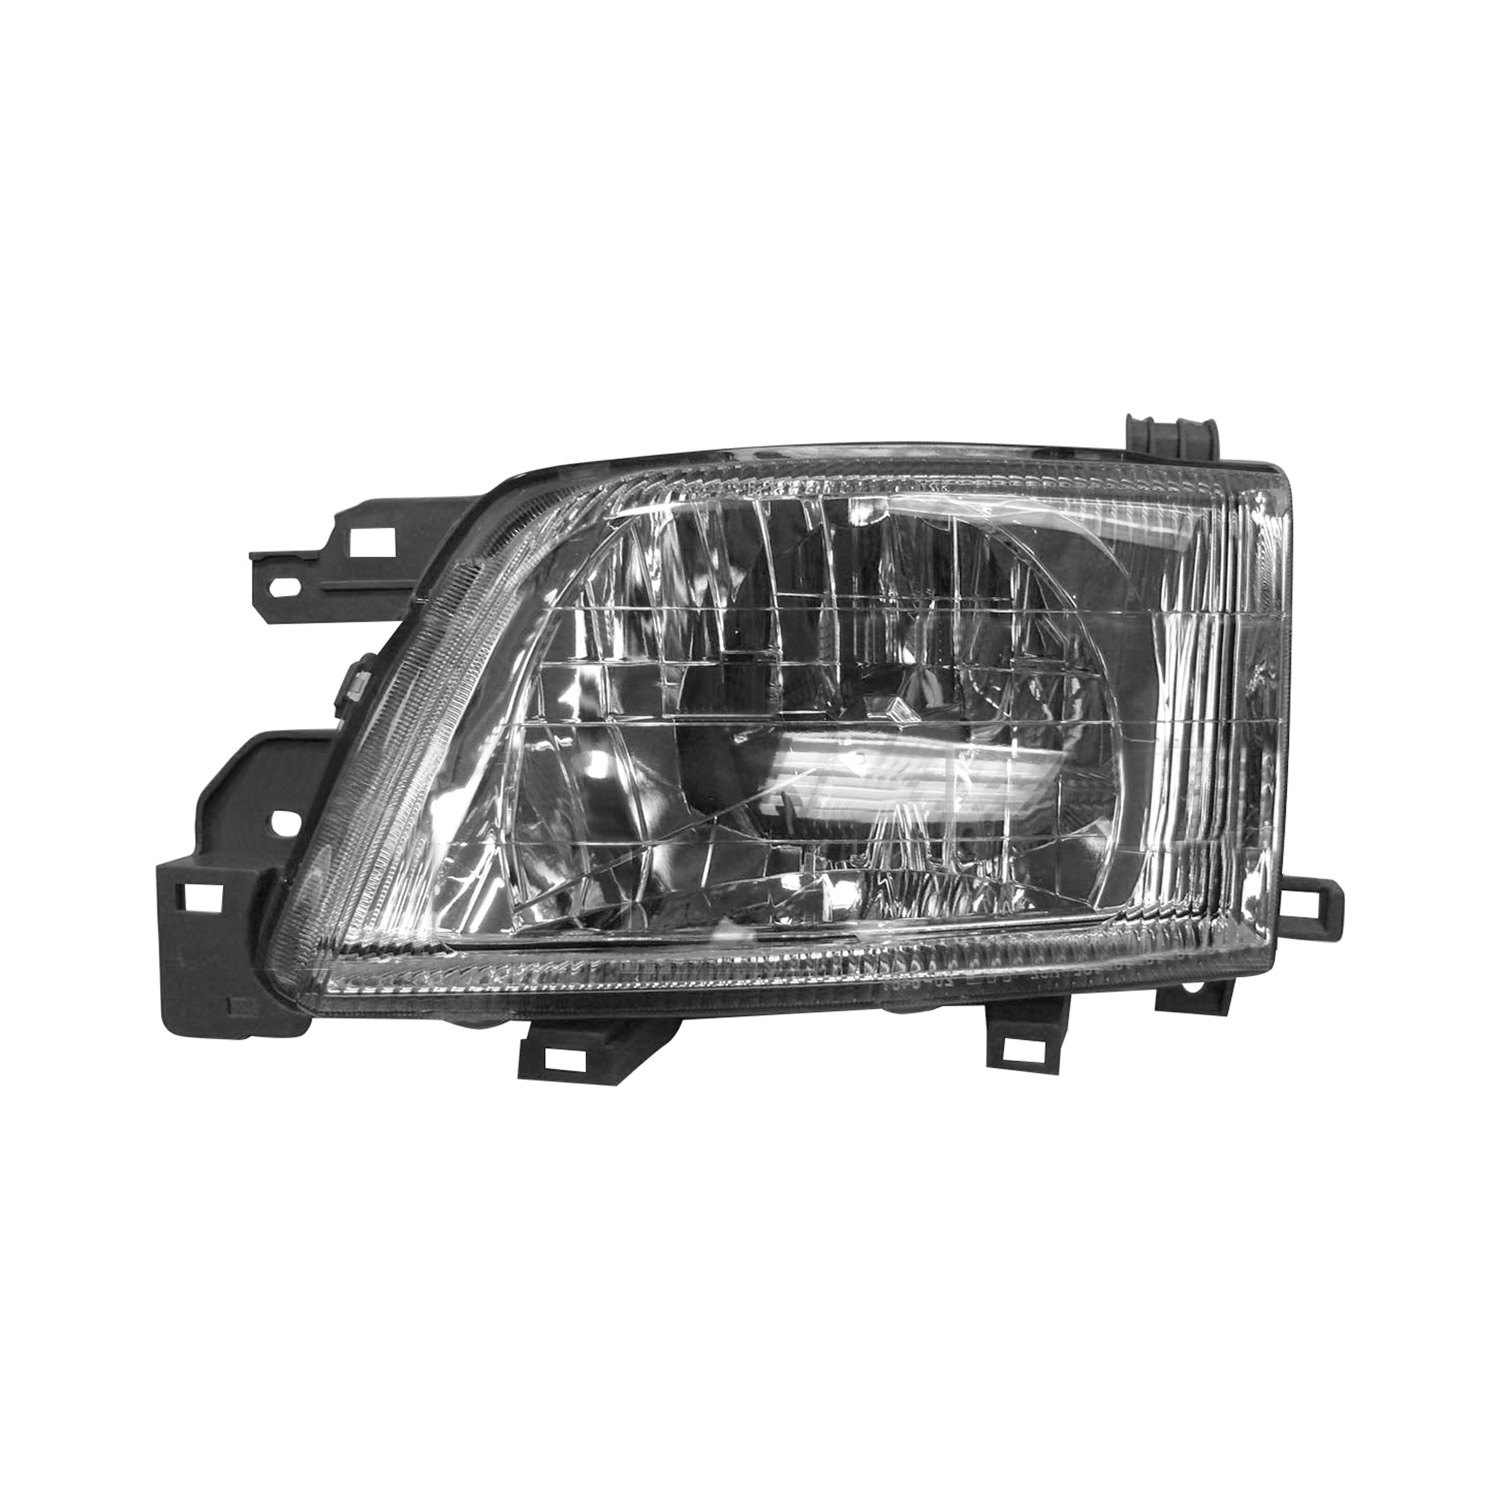 2001 subaru forester headlight wiring diagram sickle cell inheritance embly parts